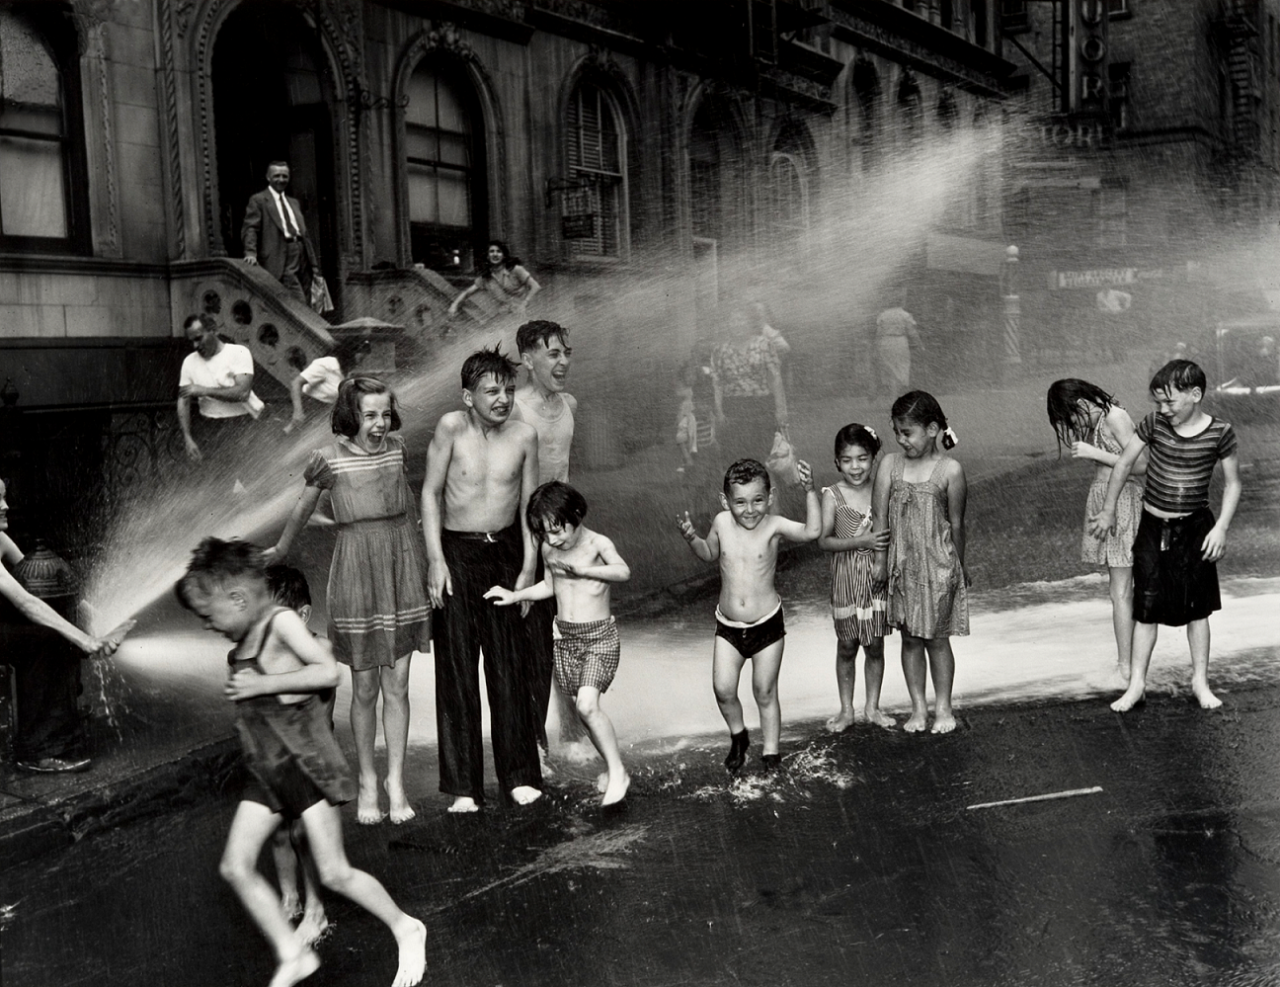 Weegee: Summer on the Lower East Side, 1937